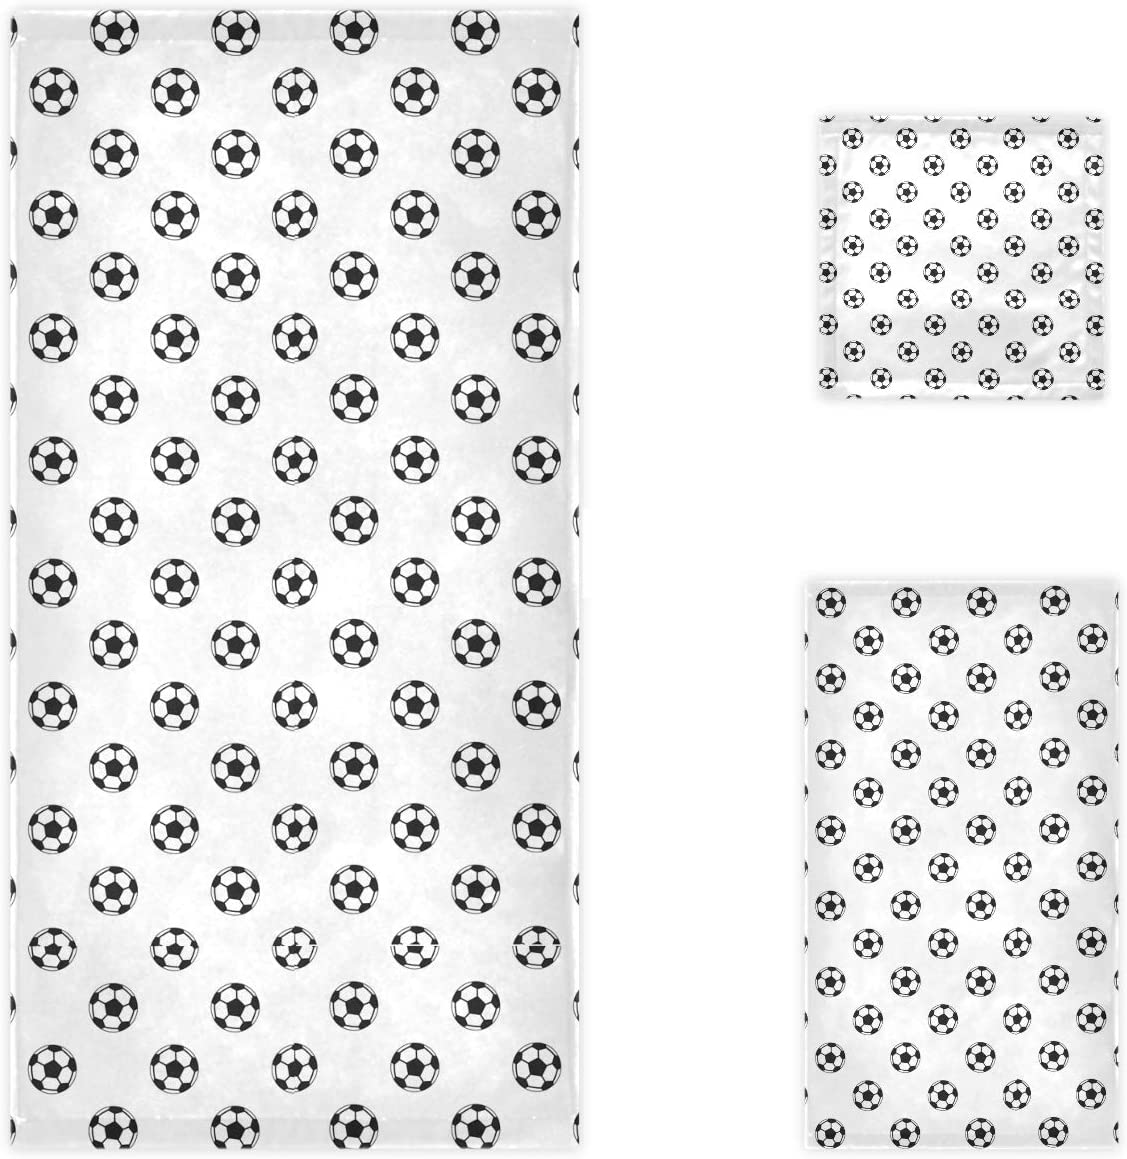 Naanle Simple Football Ranking TOP16 Pattern Soft 3 Towels Decorative Year-end annual account Set of